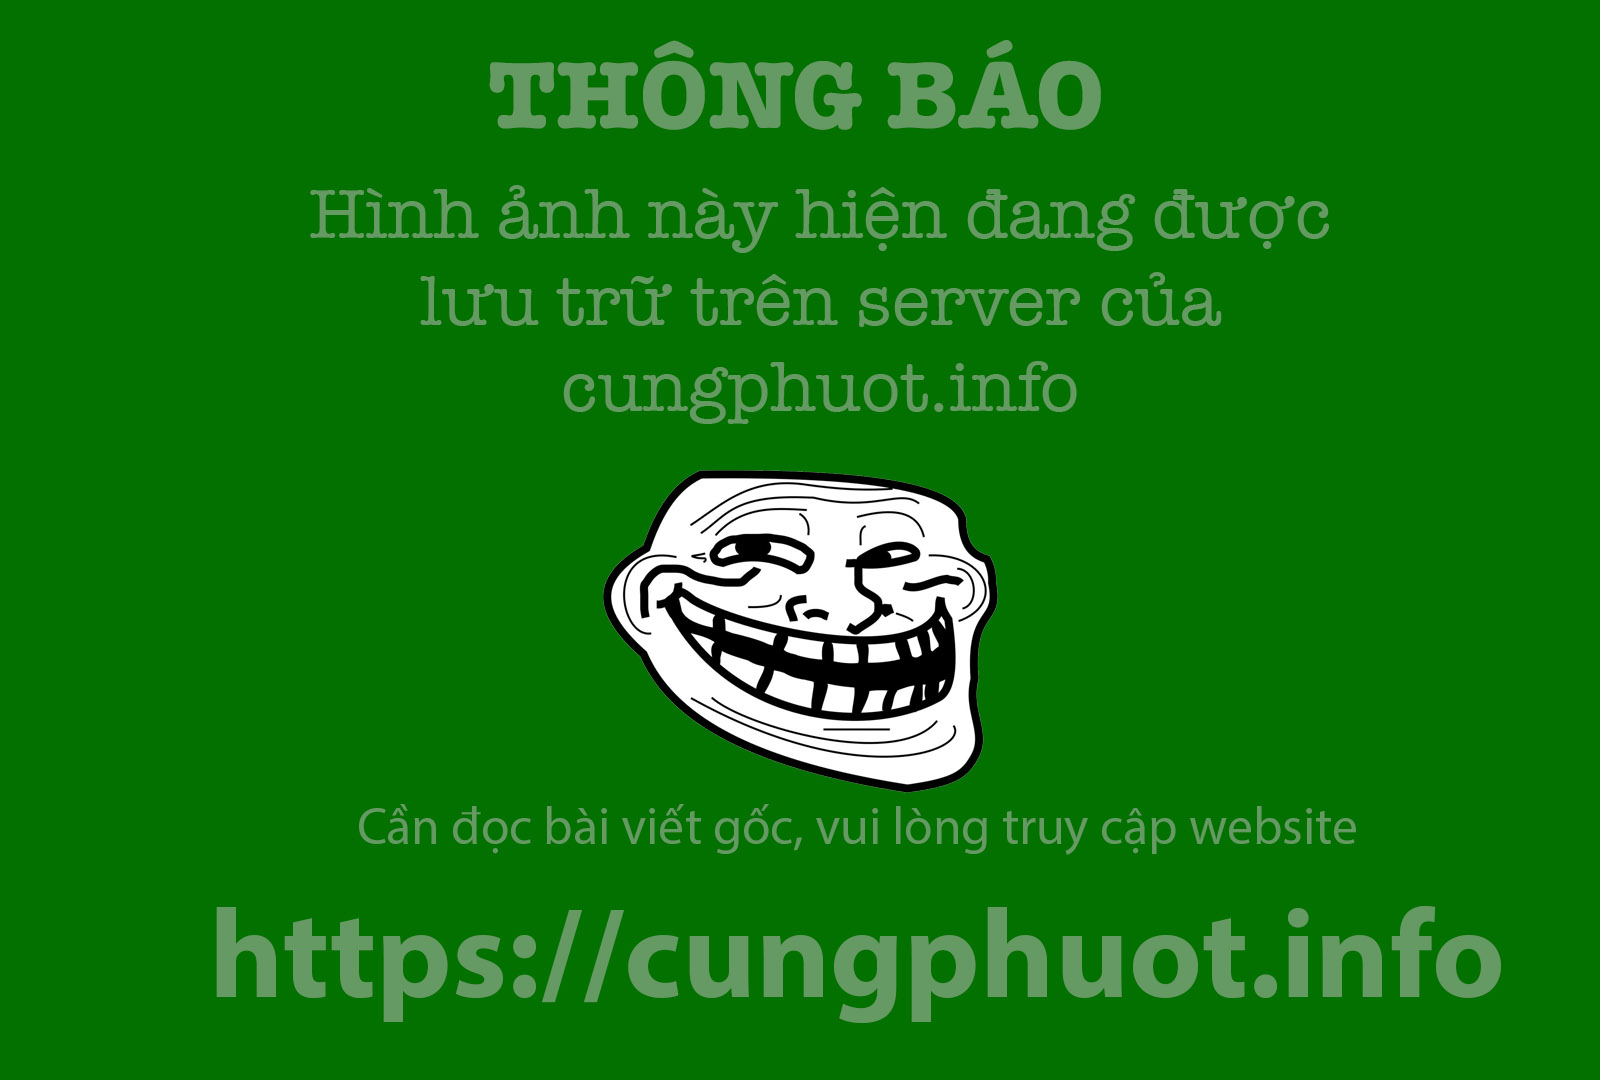 Hotels and Motels in Viet Tri, Phu Tho